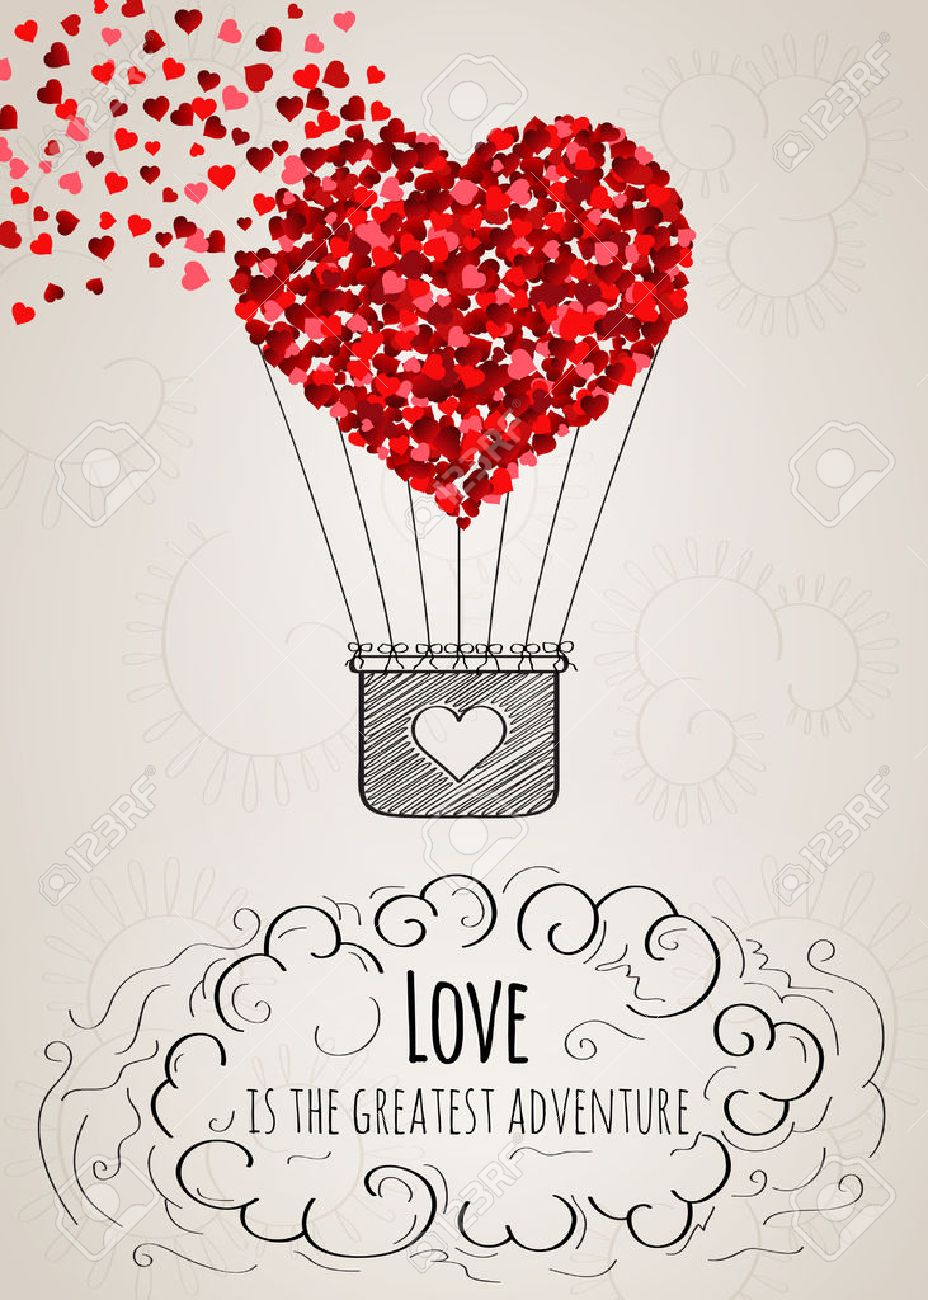 Valentine Card With A Heartshaped Hot Air Balloon Falling Apart – Heart Shaped Valentine Cards